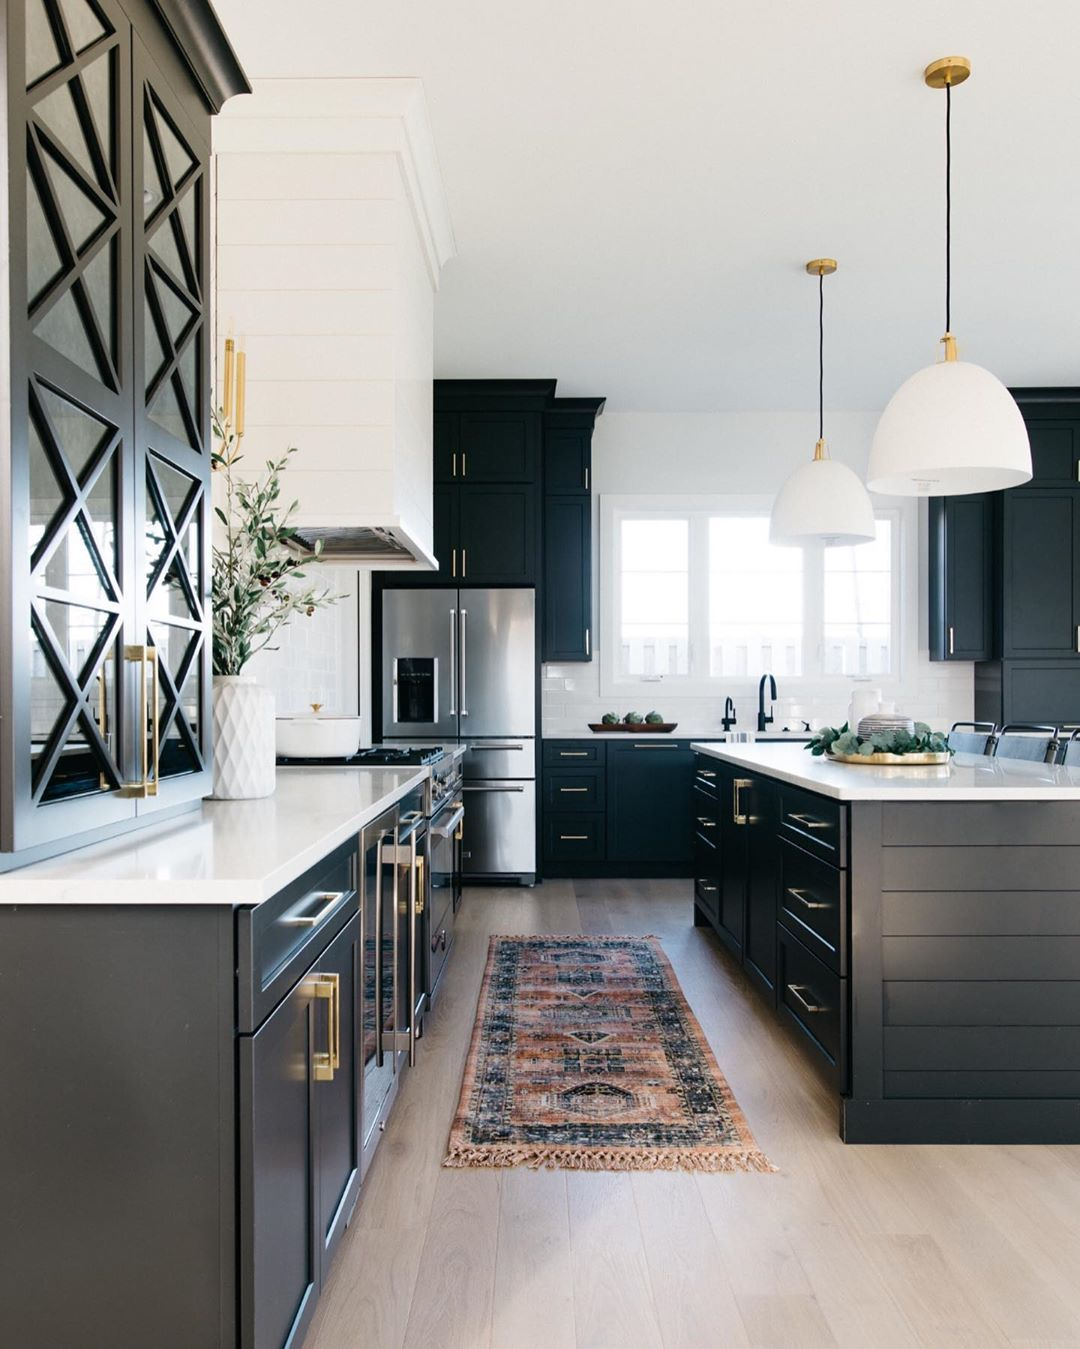 Interior Design Home Decor On Instagram Swipe Left For More Of This Beautiful Kitchen I Can T Beautiful Kitchens Black Kitchen Cabinets Aesthetic Kitchen Beautiful kitchens bedrooms and